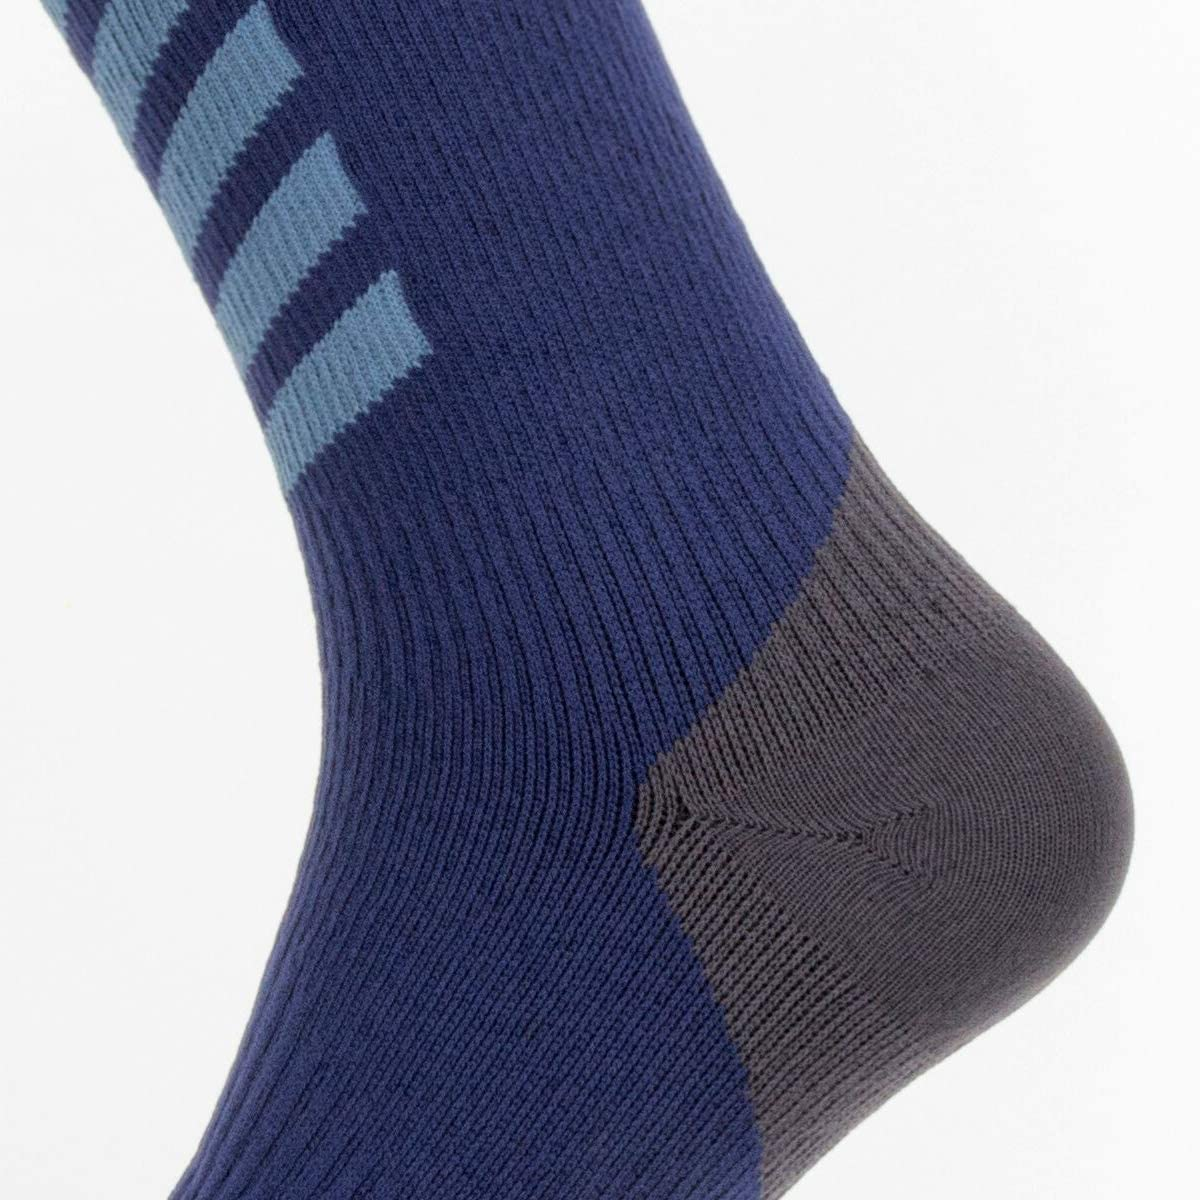 Seal Skinz Mid Length Sock with Hydrostop Calcetines Unisex Adulto